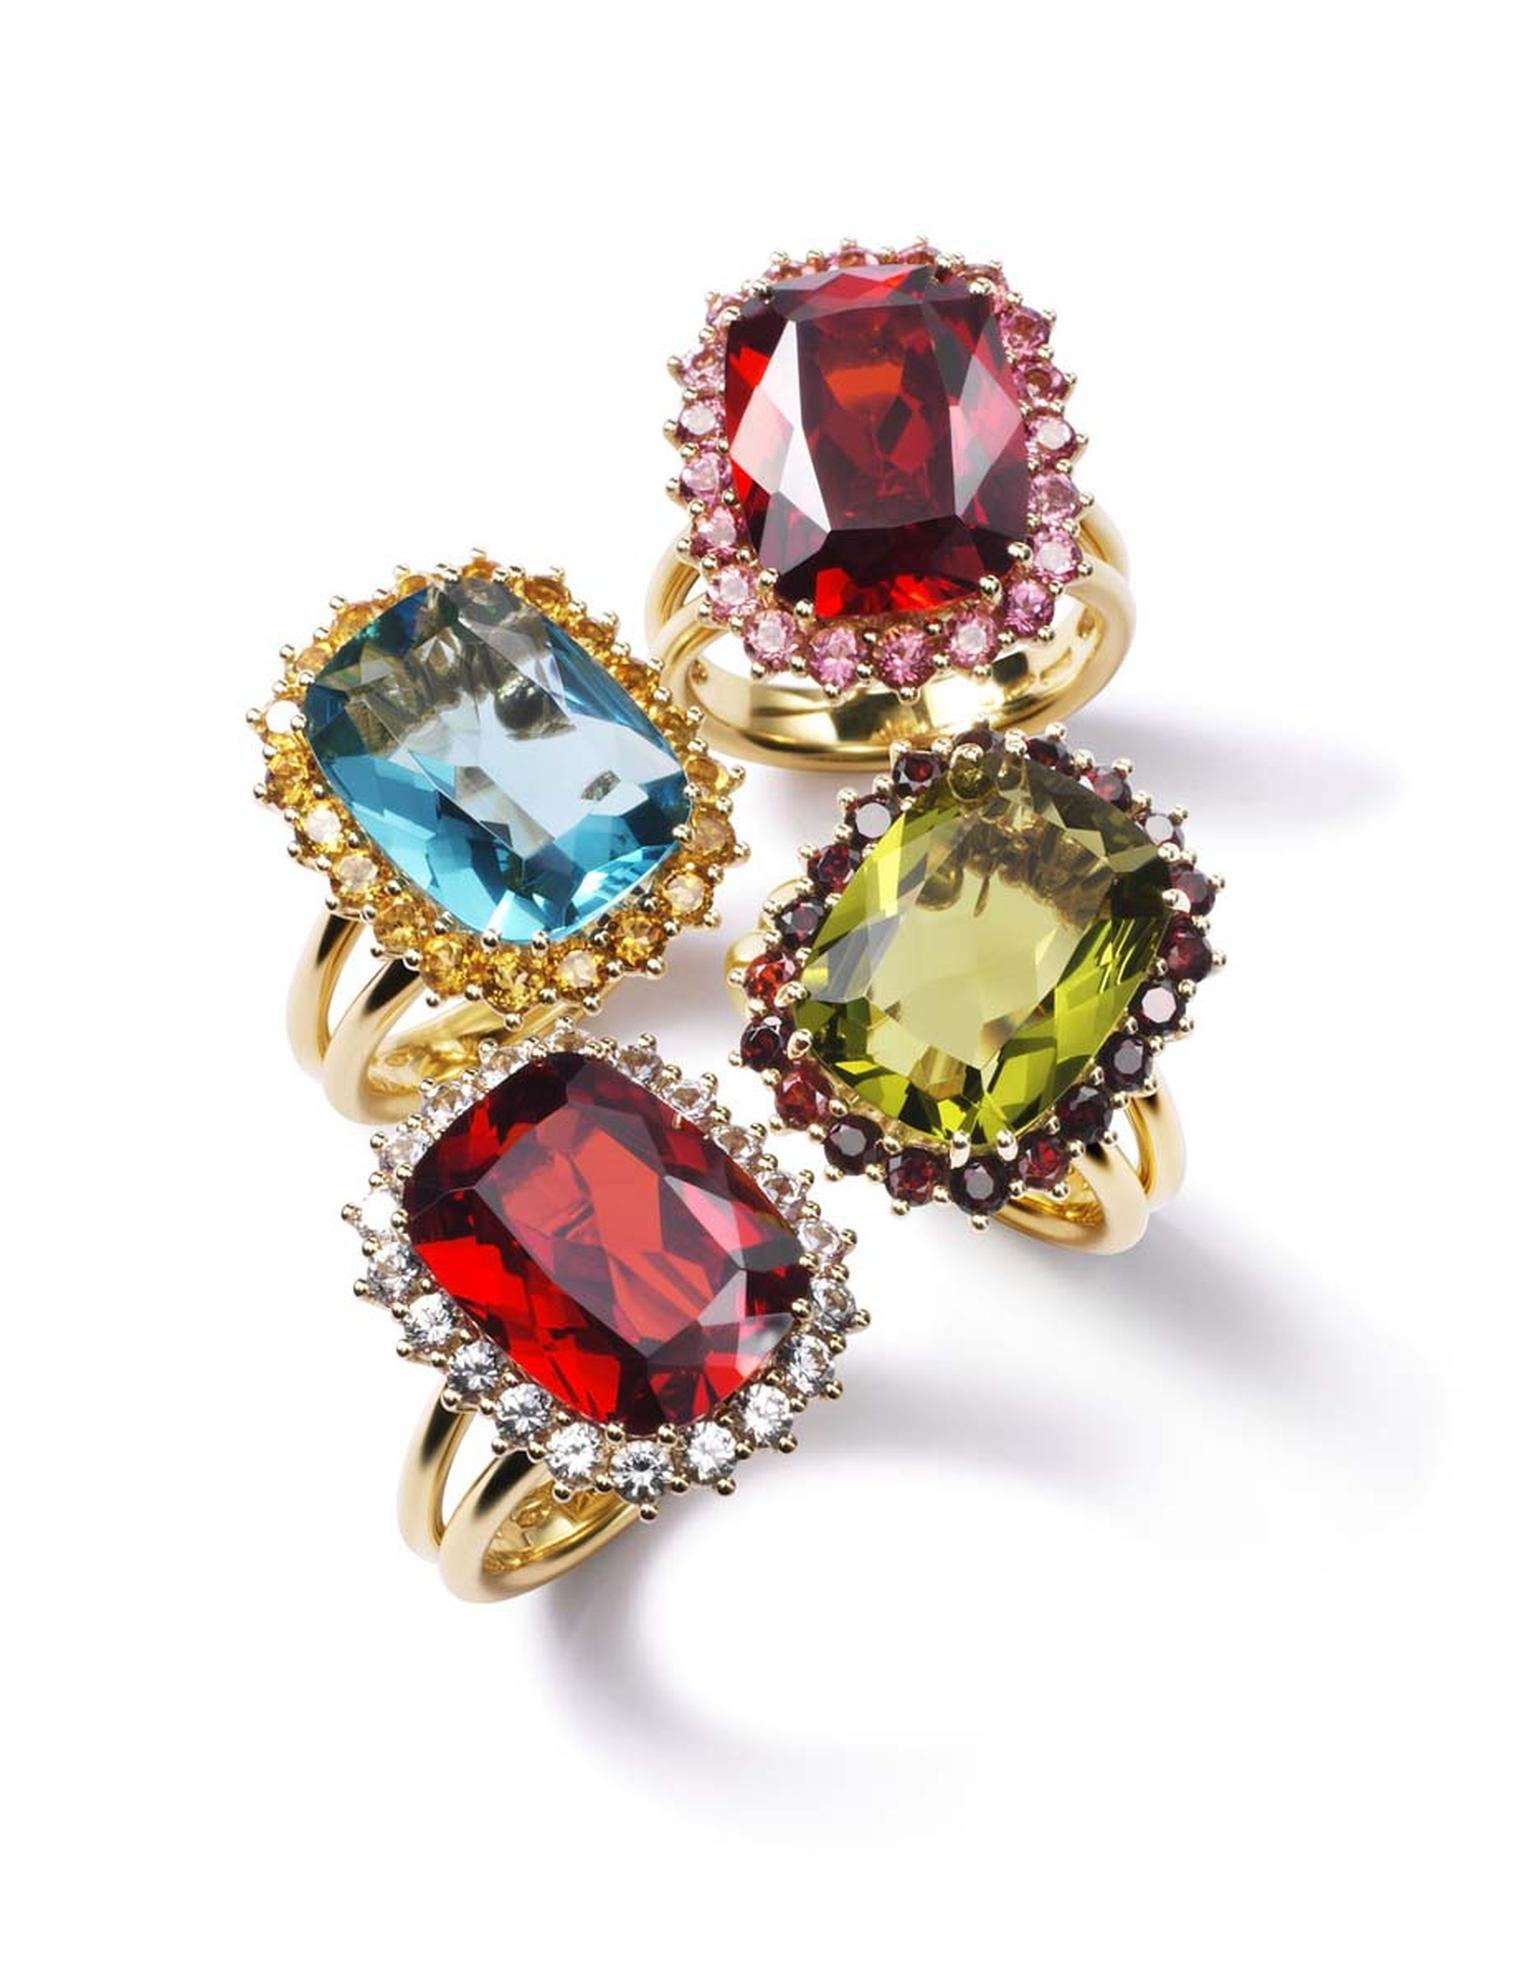 Dolce & Gabbana's colourful new collection of engagement rings (£POA).